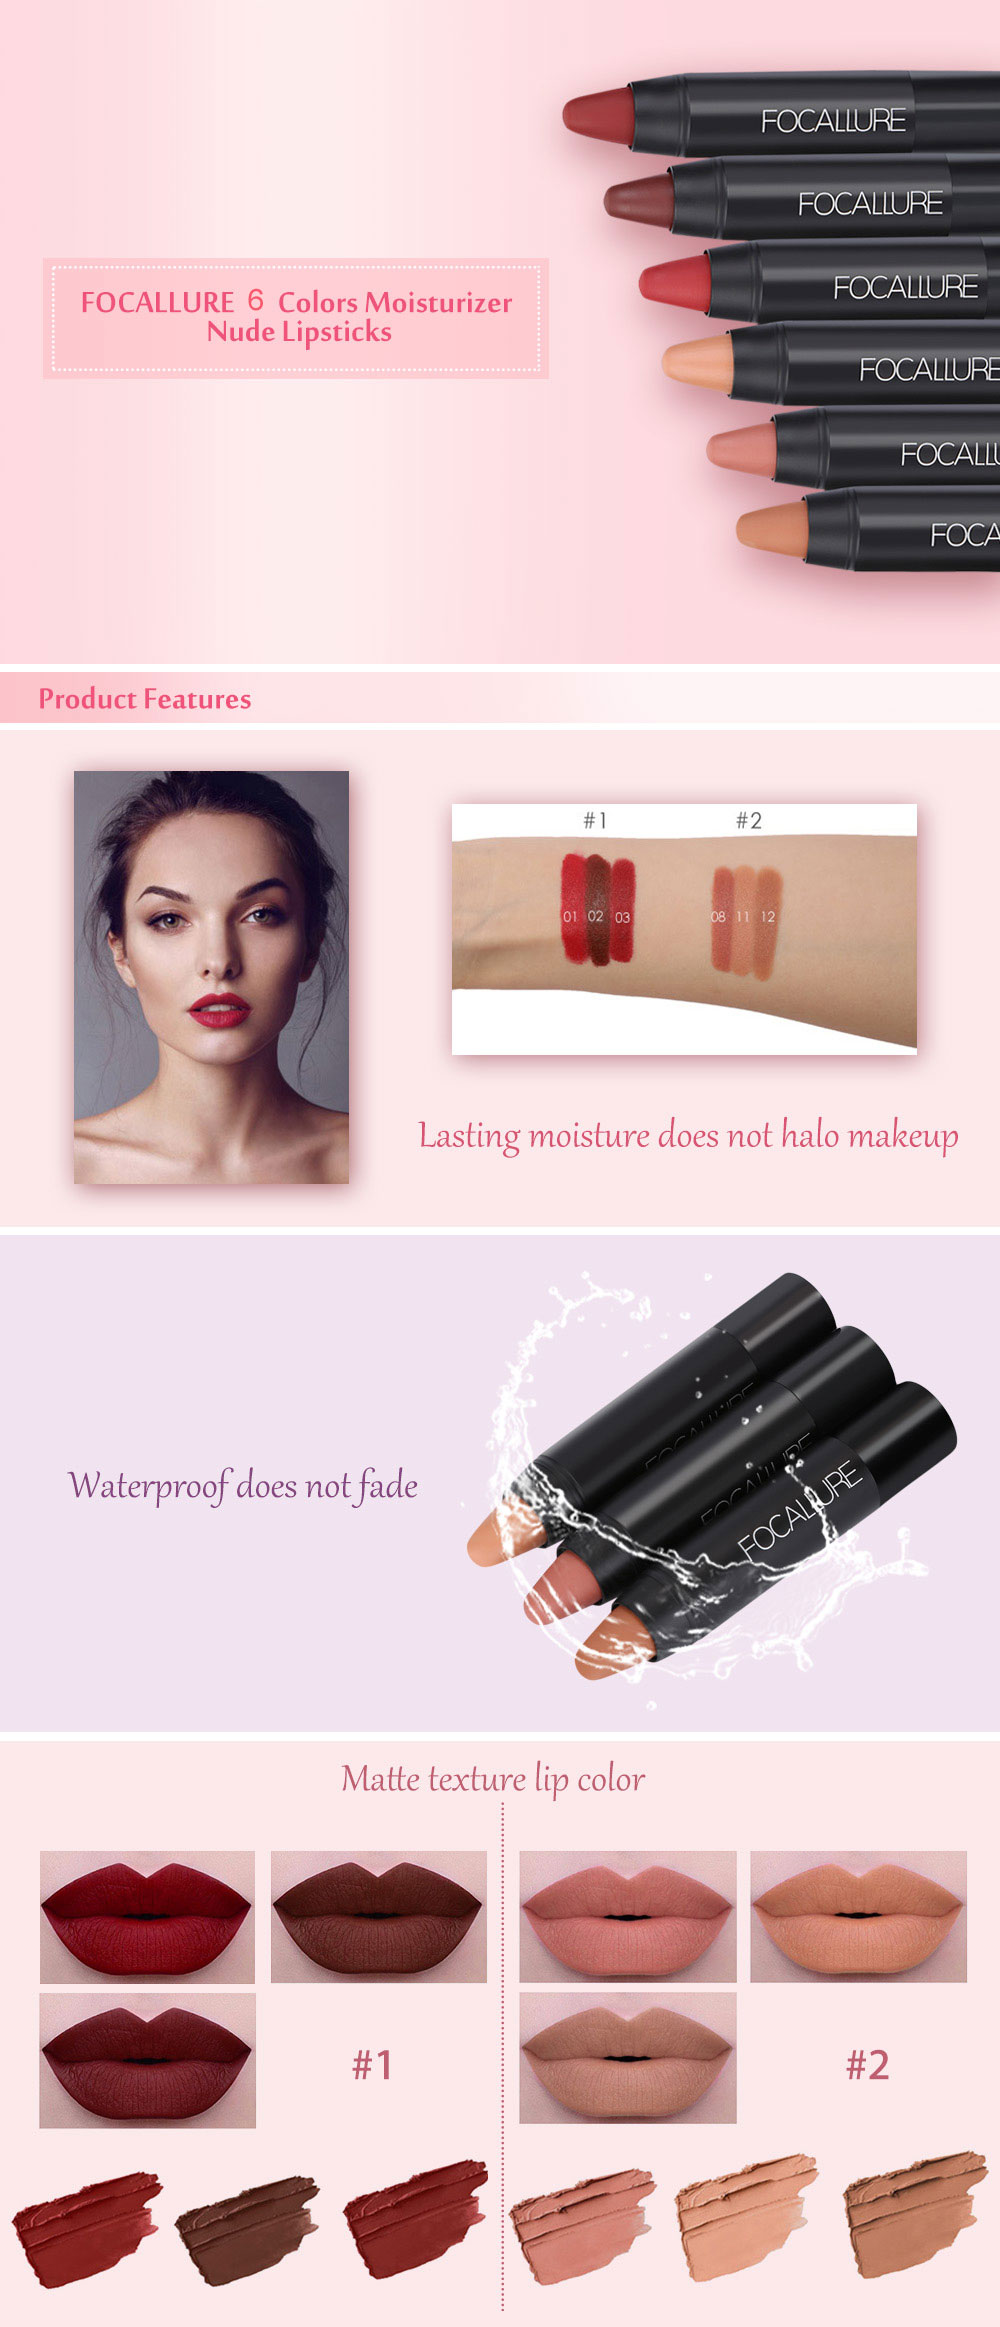 FOCALLURE 3 Colors Waterproof Long-lasting Moisturizer Nude Lipsticks